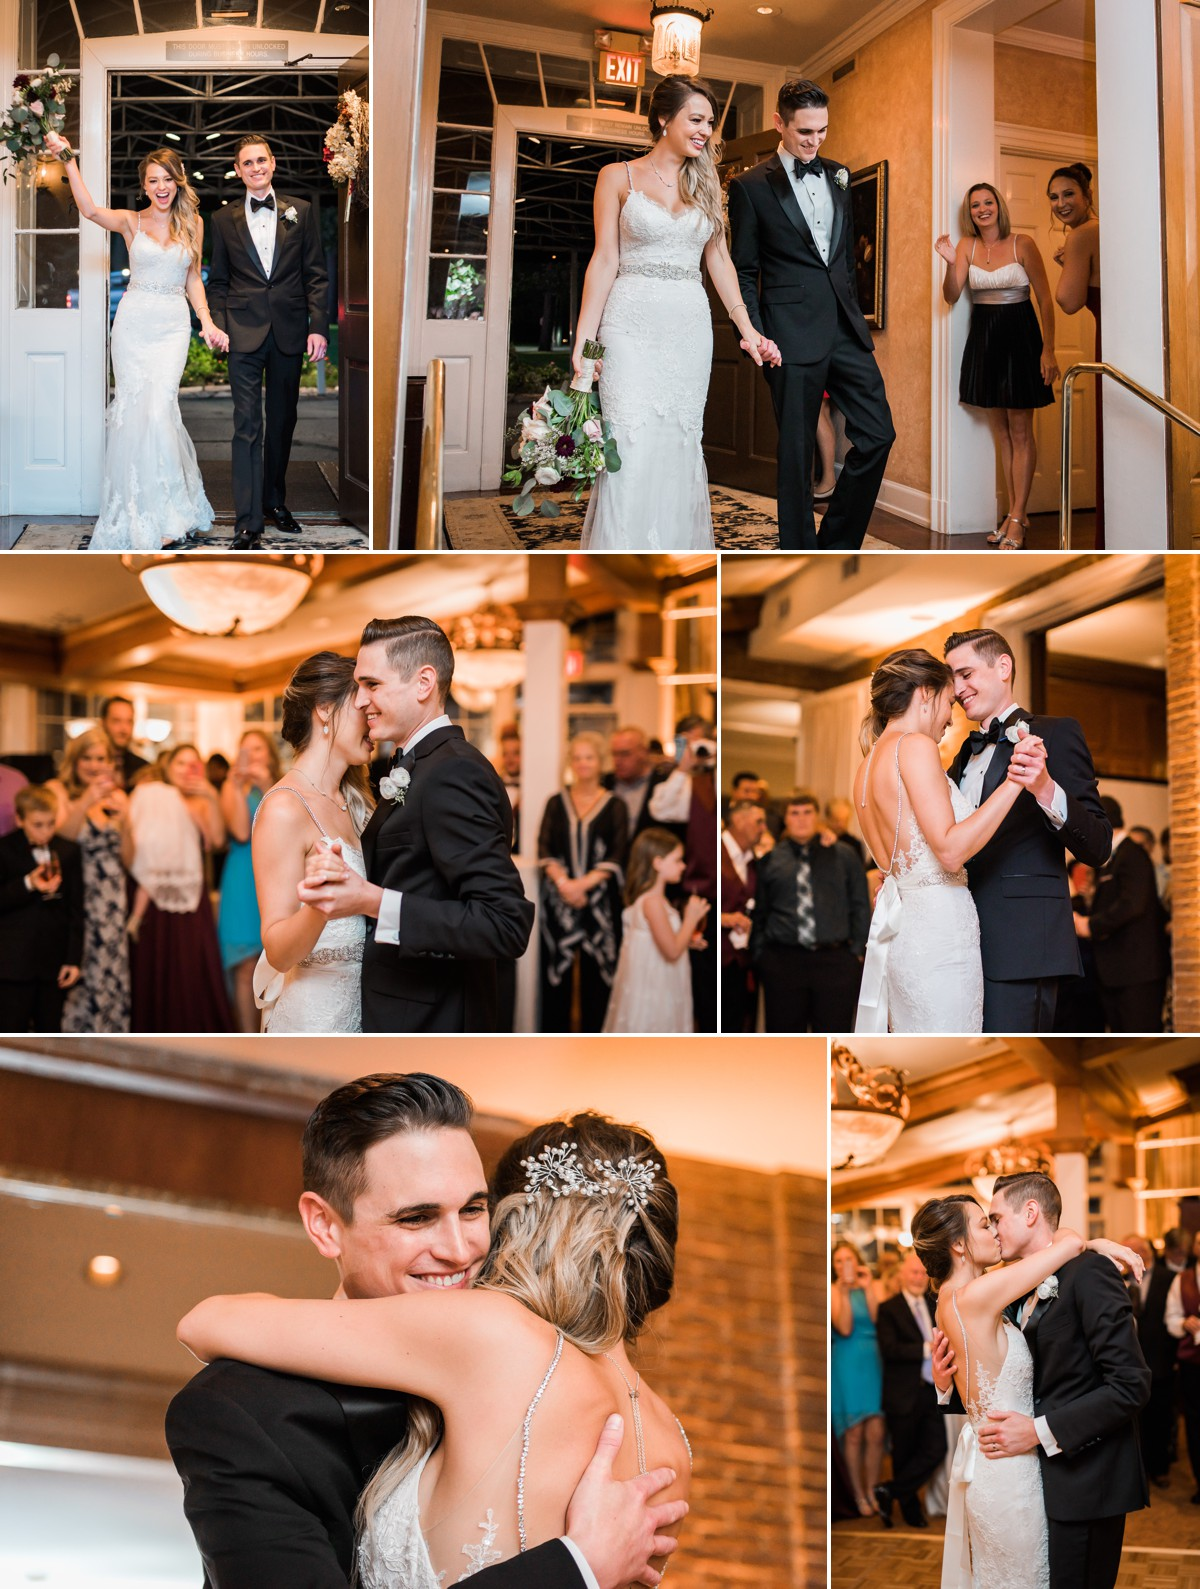 Manor House Wedding at The Houstonian Hotel Reception First Dance Bride and Groom